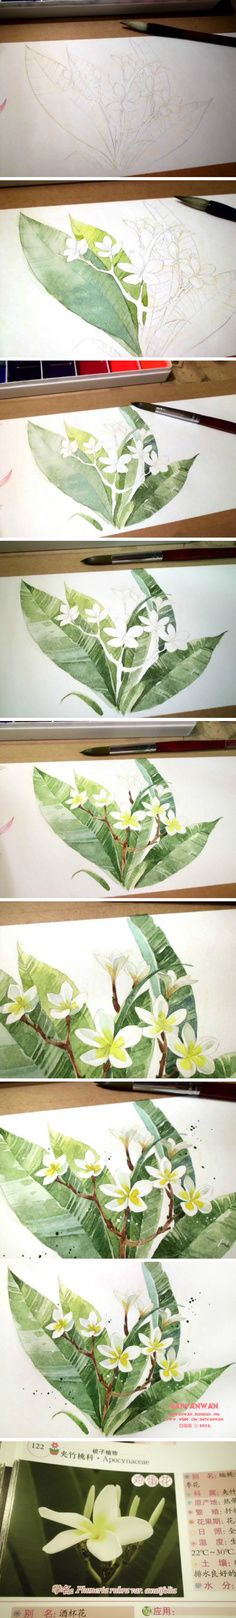 picture tutorial of flowers in watercolor